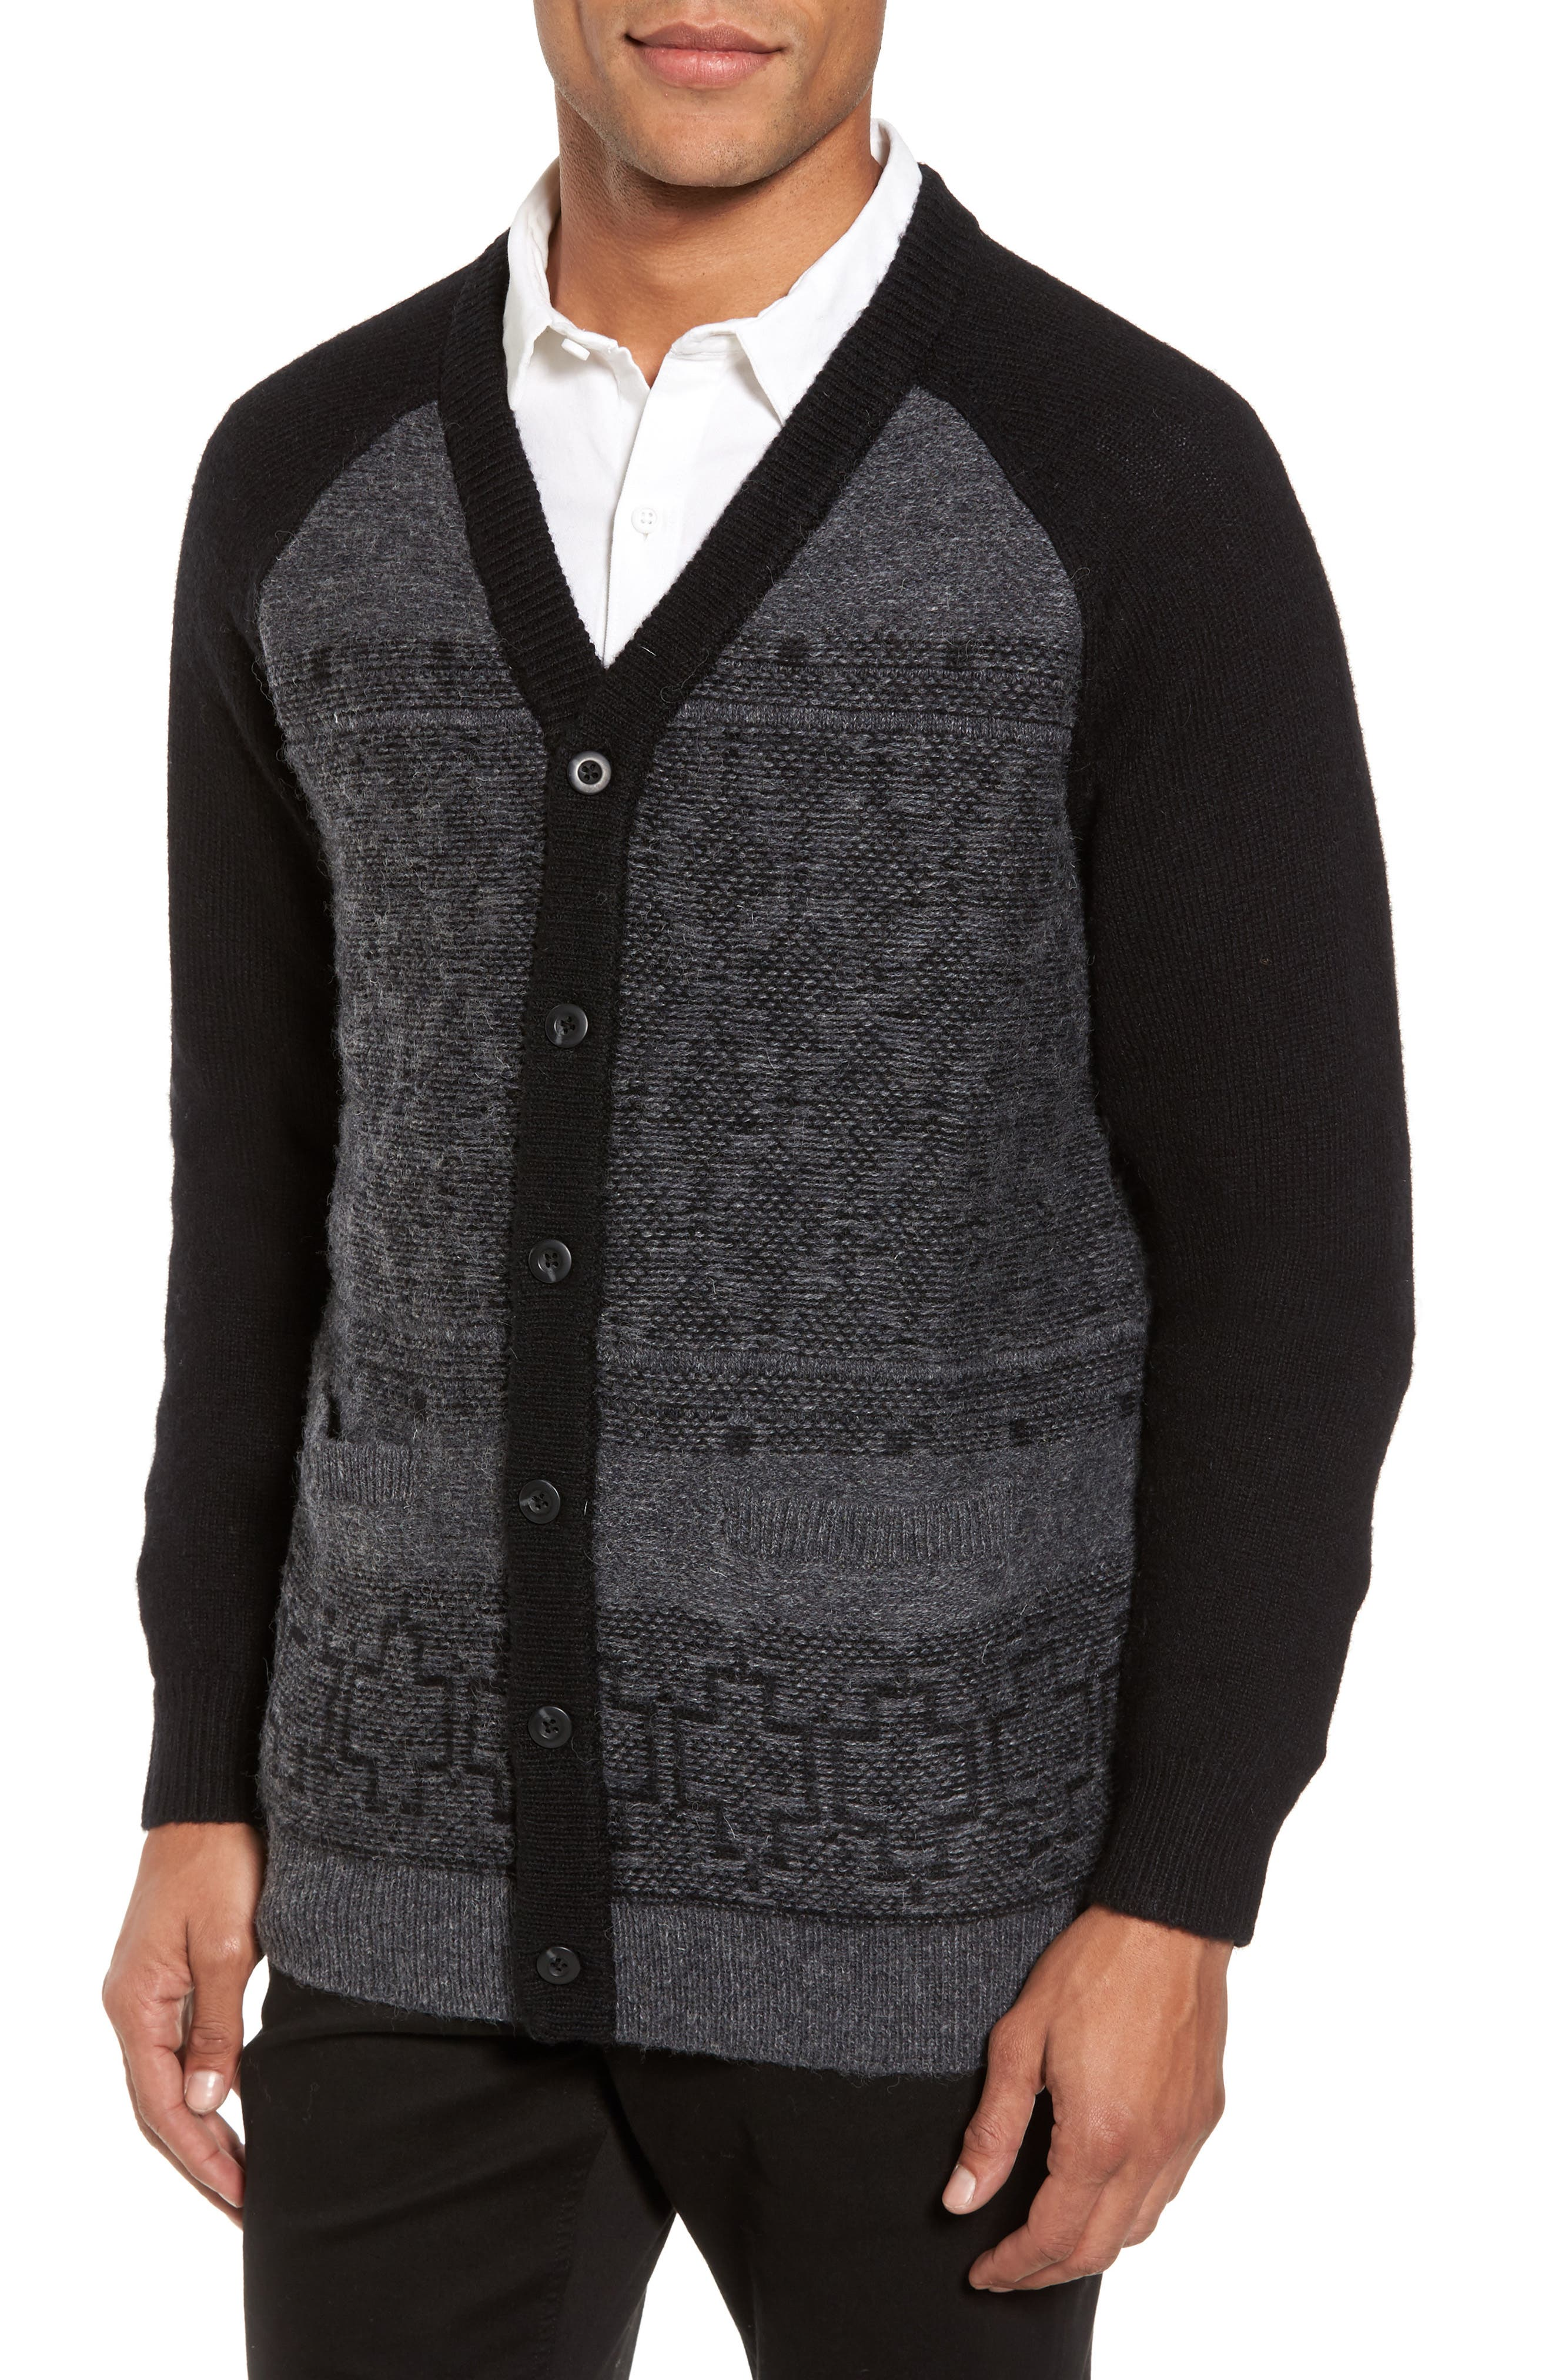 Waverly Cardigan,                         Main,                         color, Grey/ Black